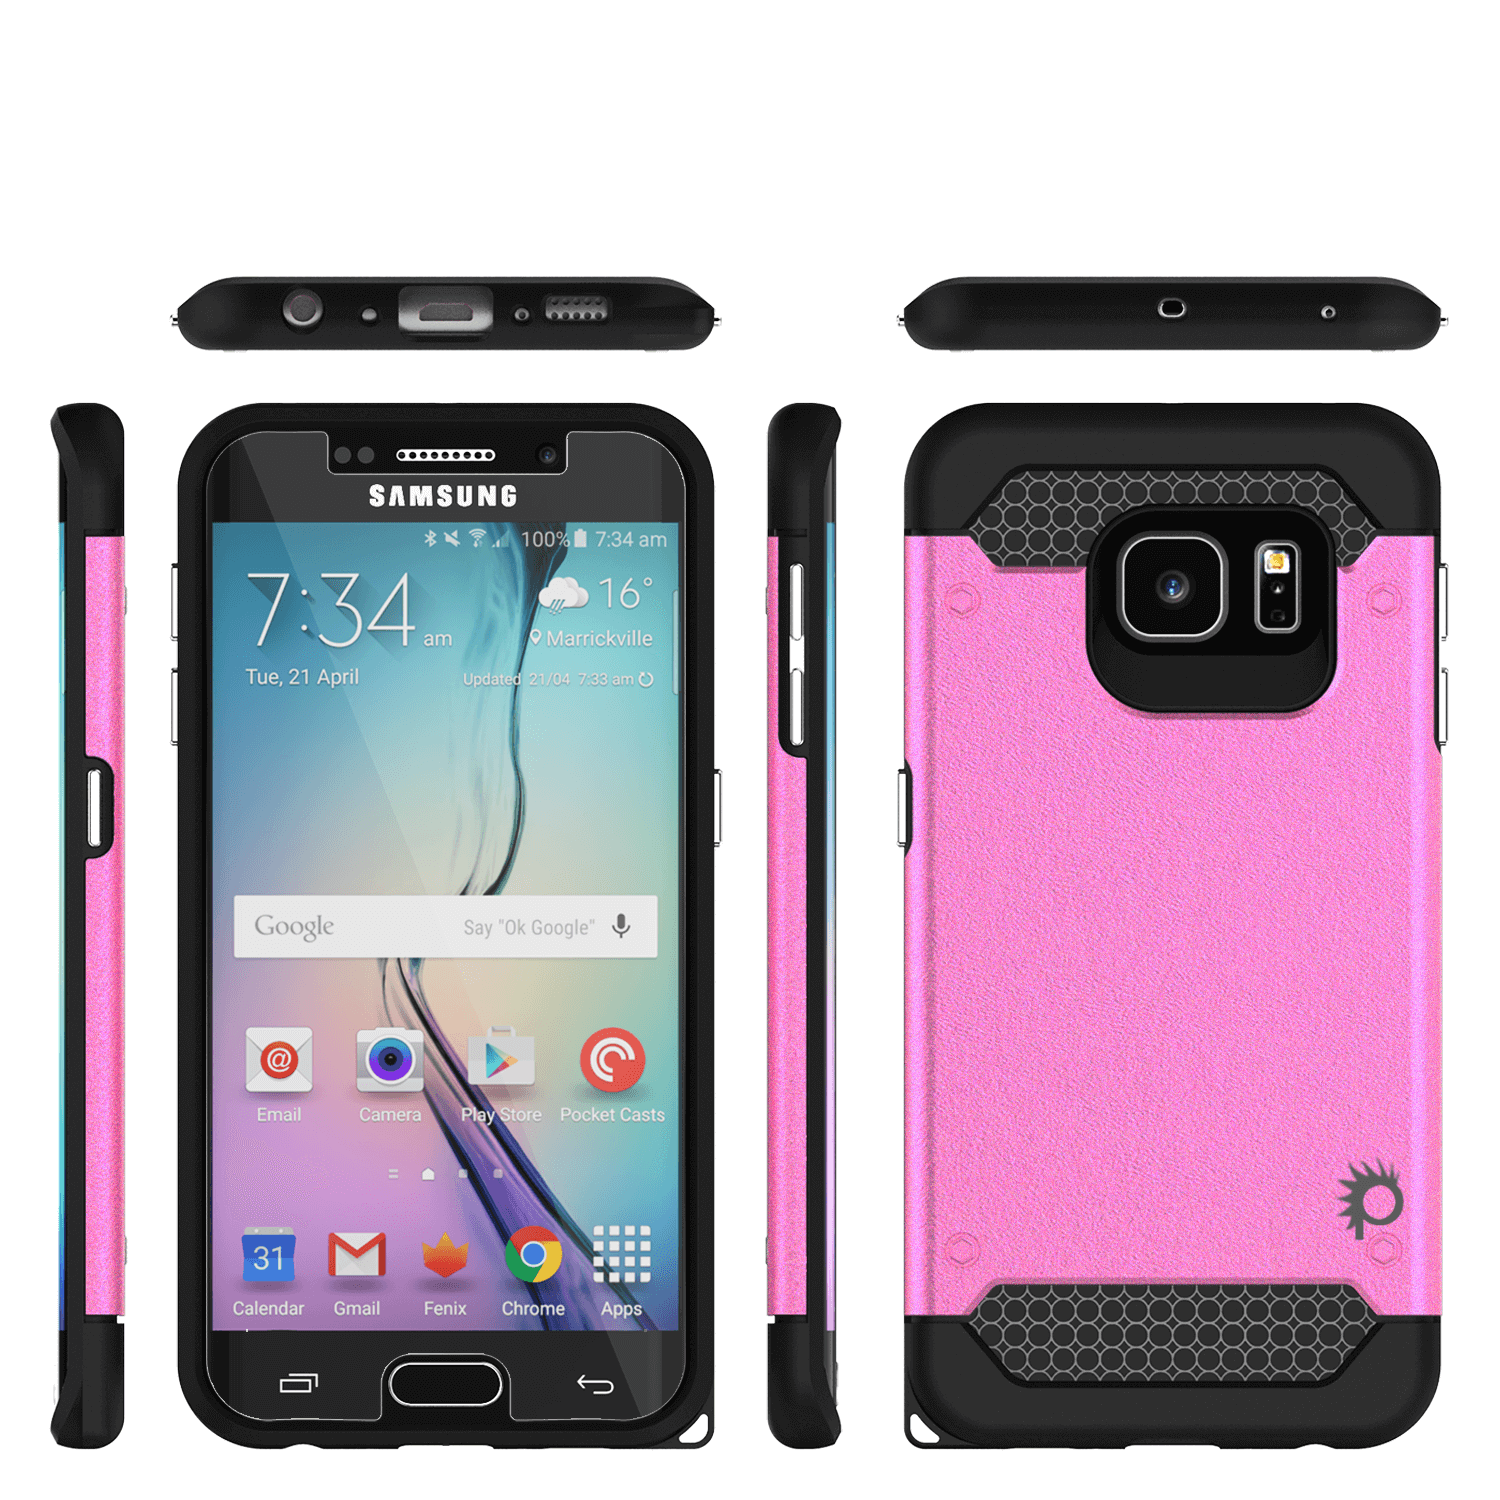 Galaxy s6 EDGE Plus Case PunkCase Galactic Pink Series Slim Armor Soft Cover w/ Screen Protector